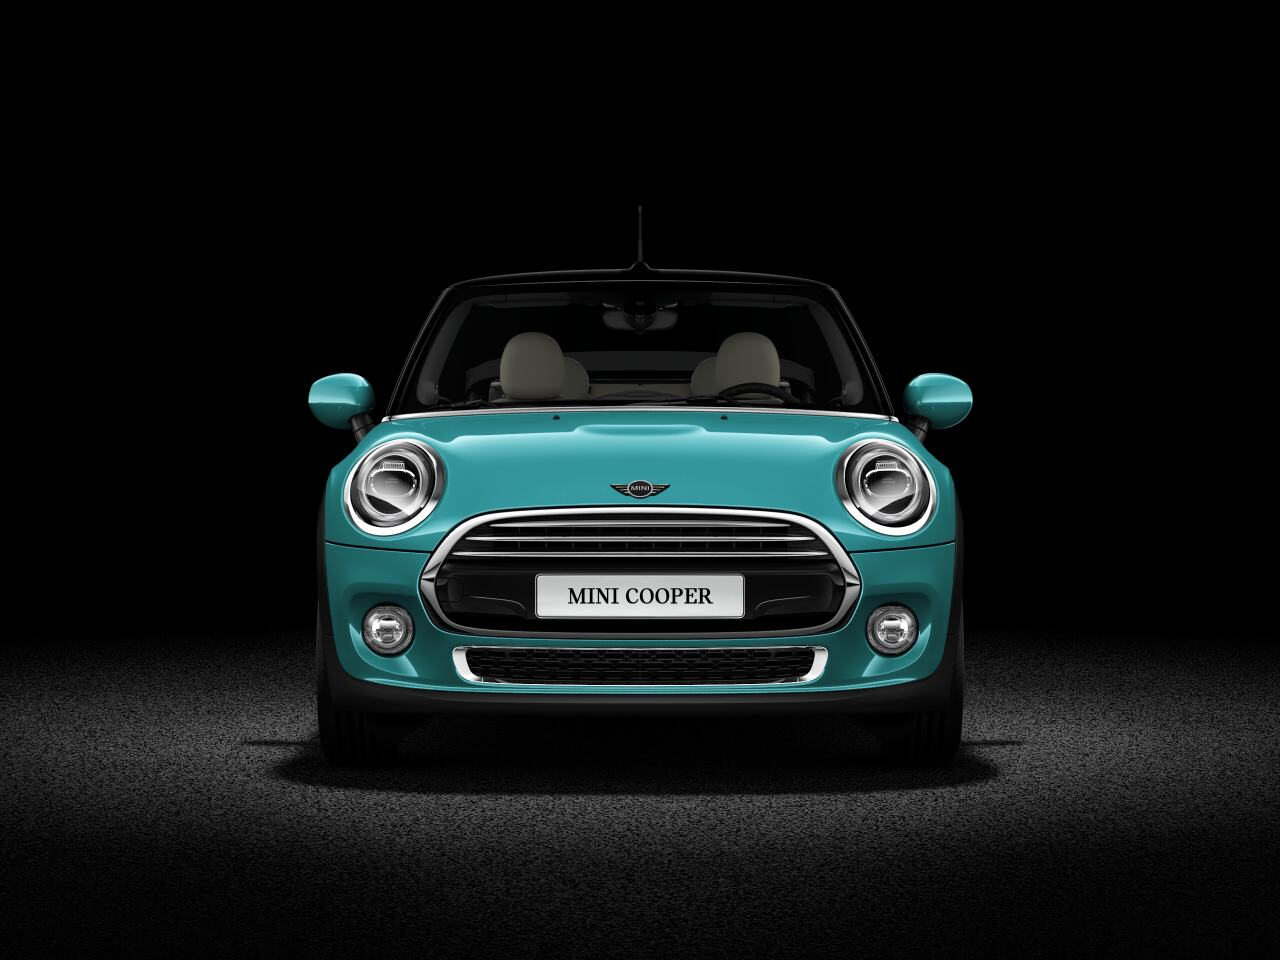 MINI Cooper Convertible front profile